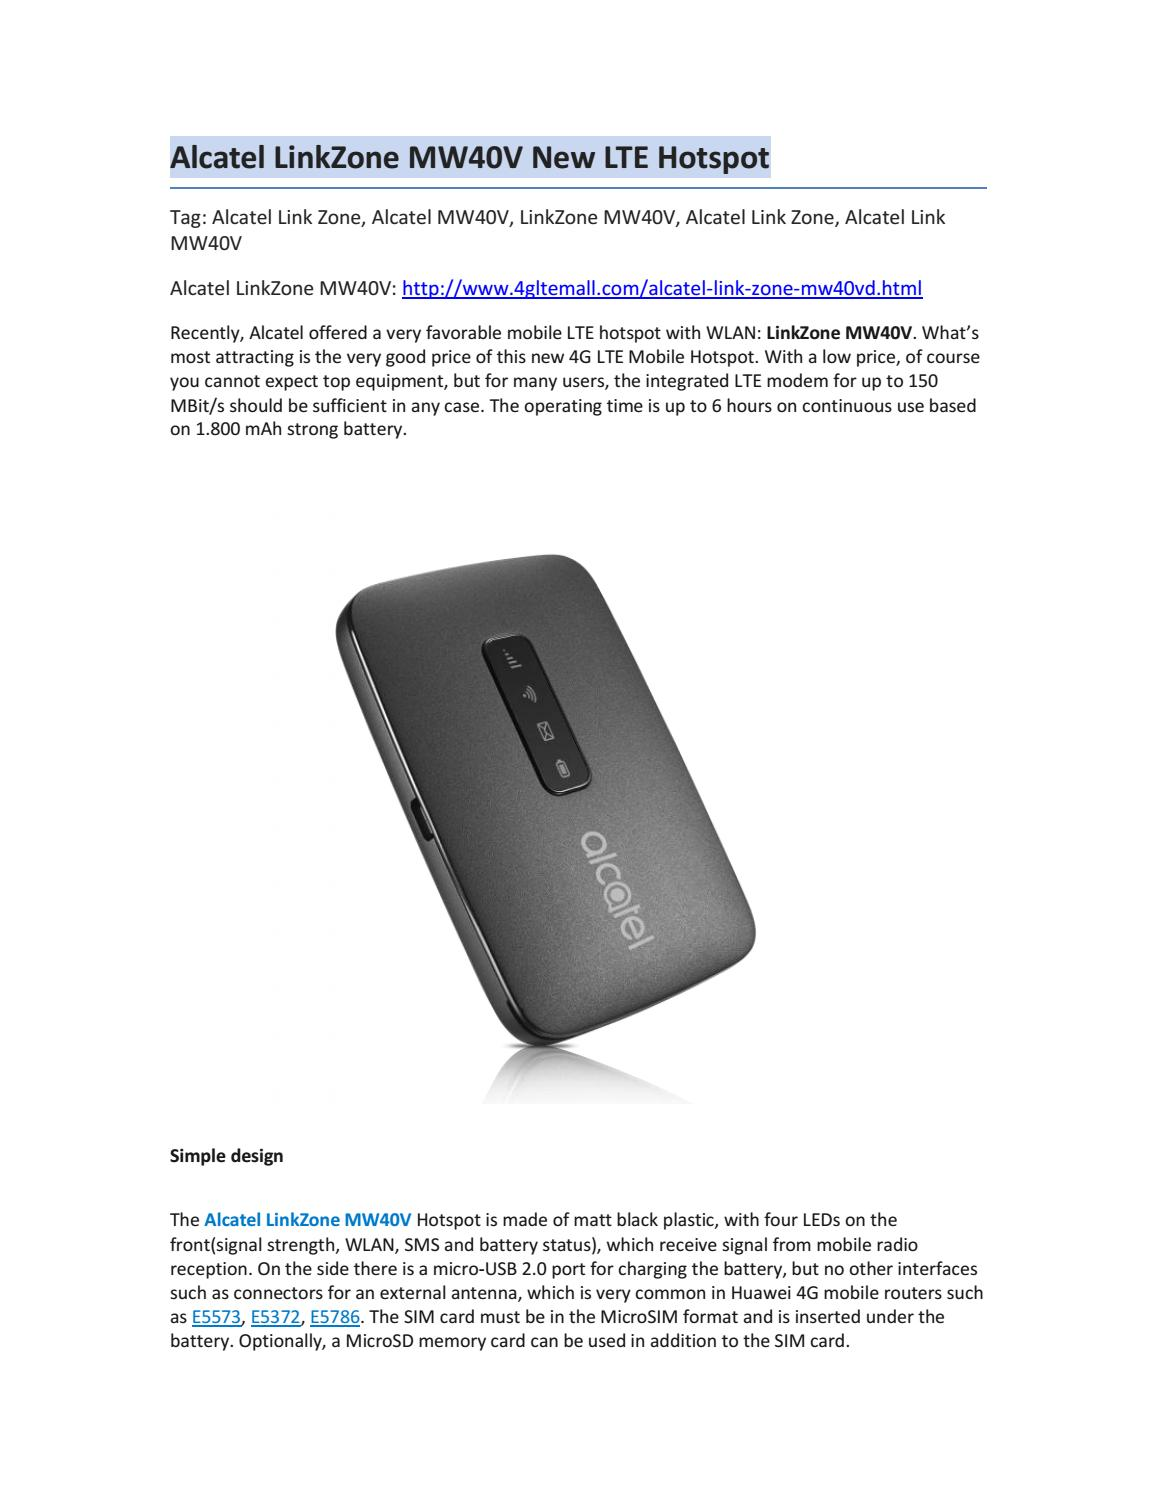 Alcatel LinkZone MW40V New LTE Hotspot by Lte Mall - issuu